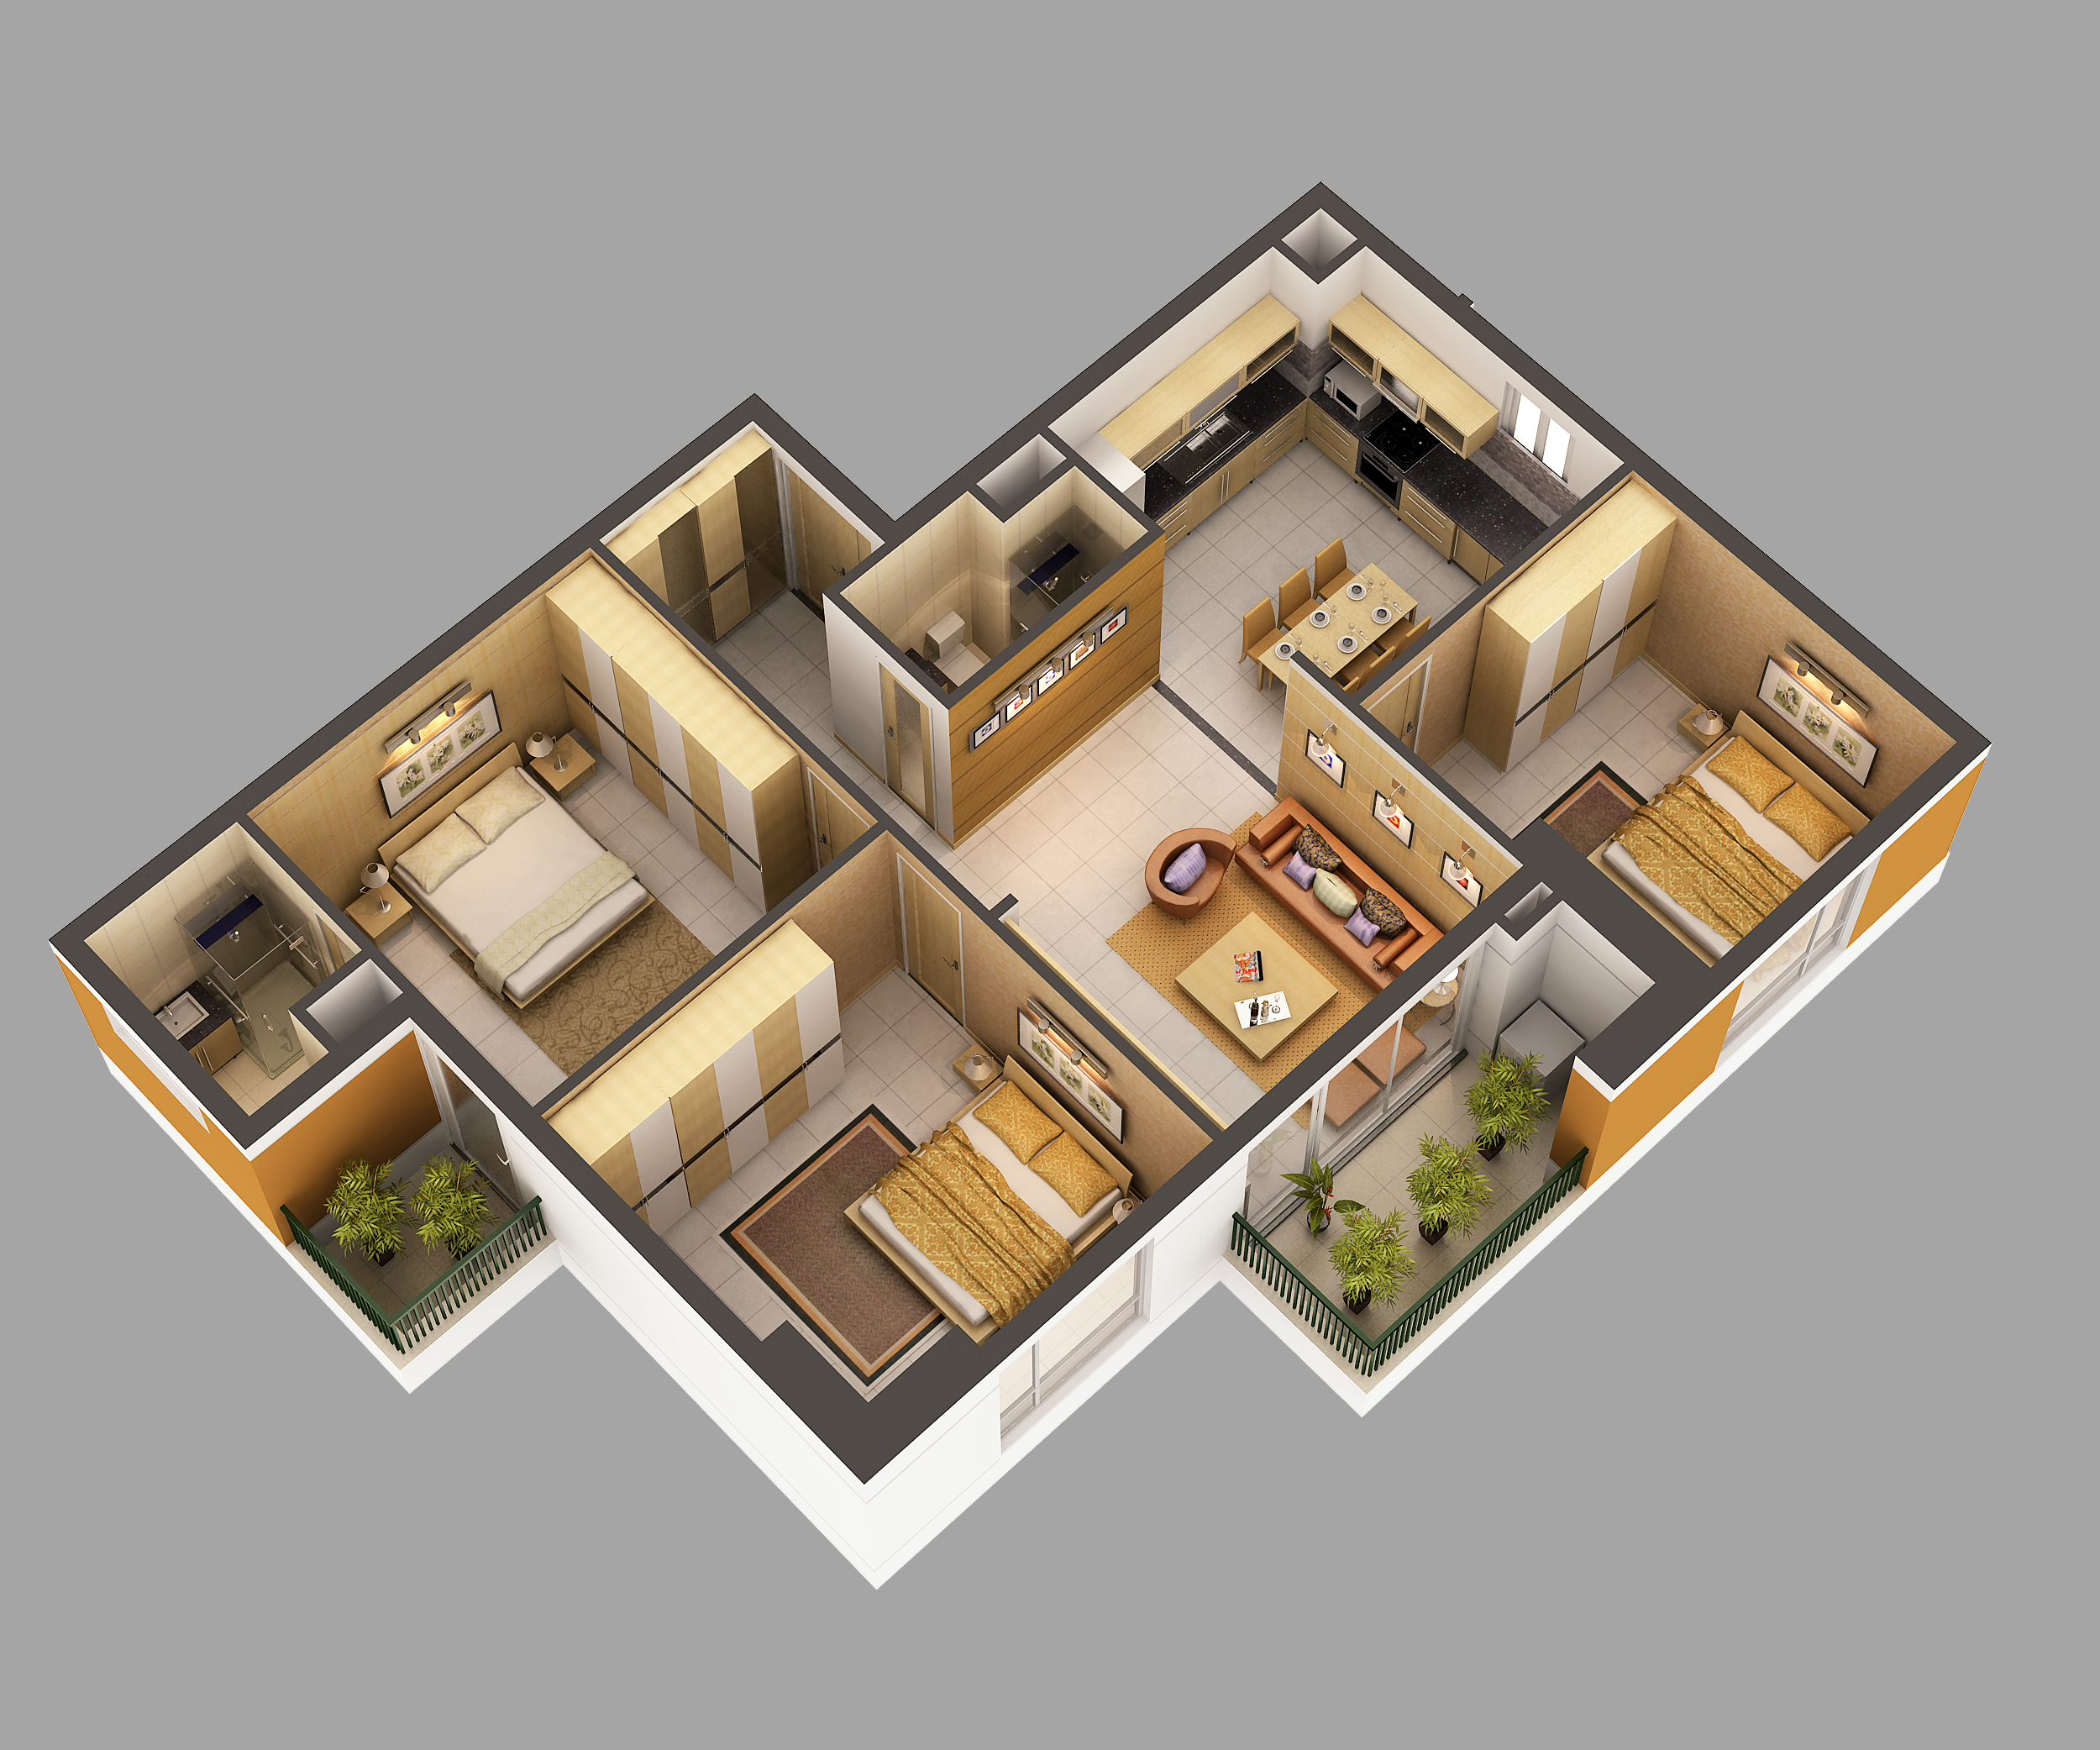 3d model home interior fully furnished 3d model max ForHome 3d Model